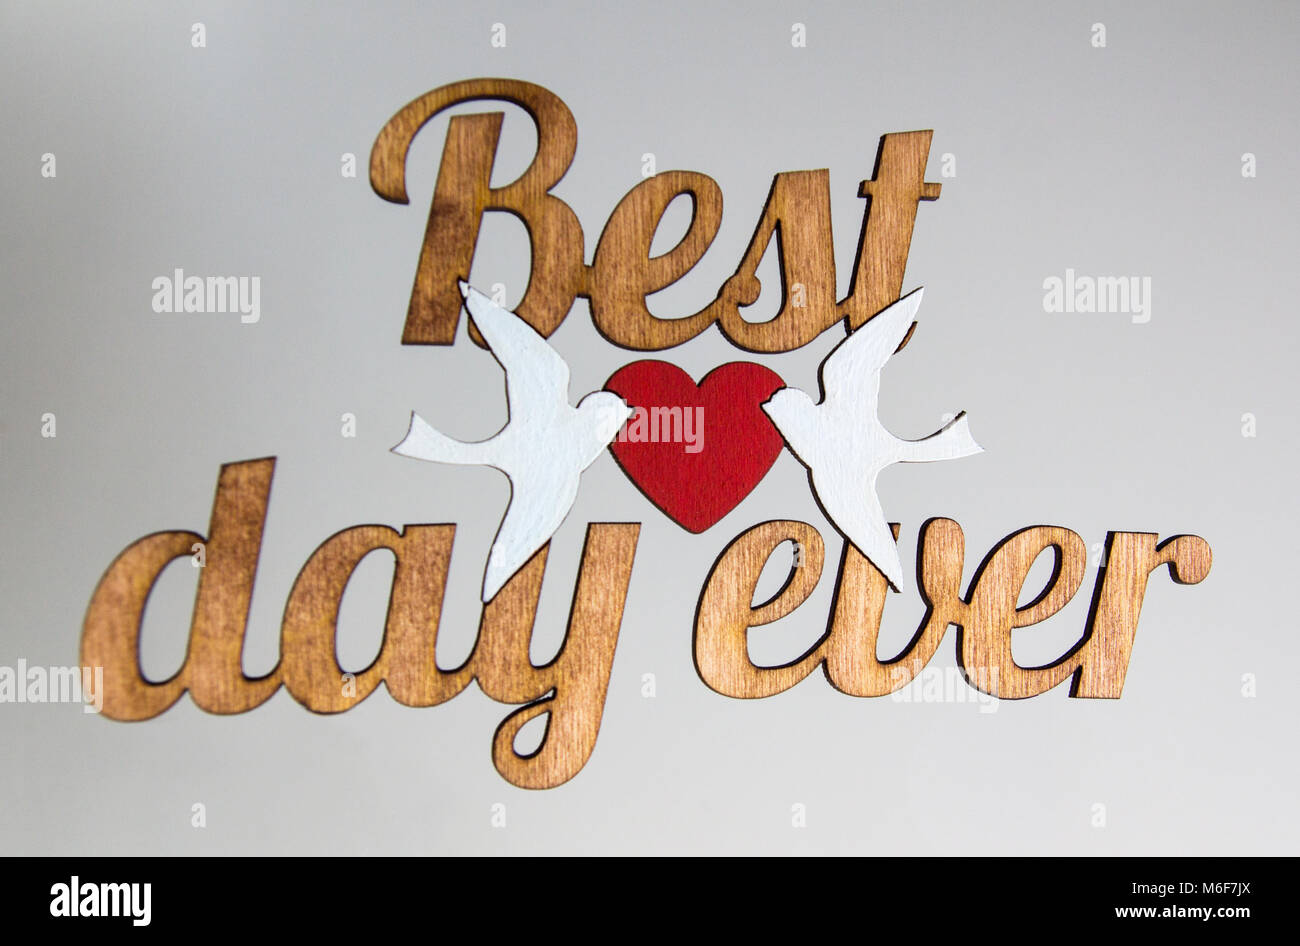 Best Day Ever Modern Calligraphy Motivational Quote Wood Words